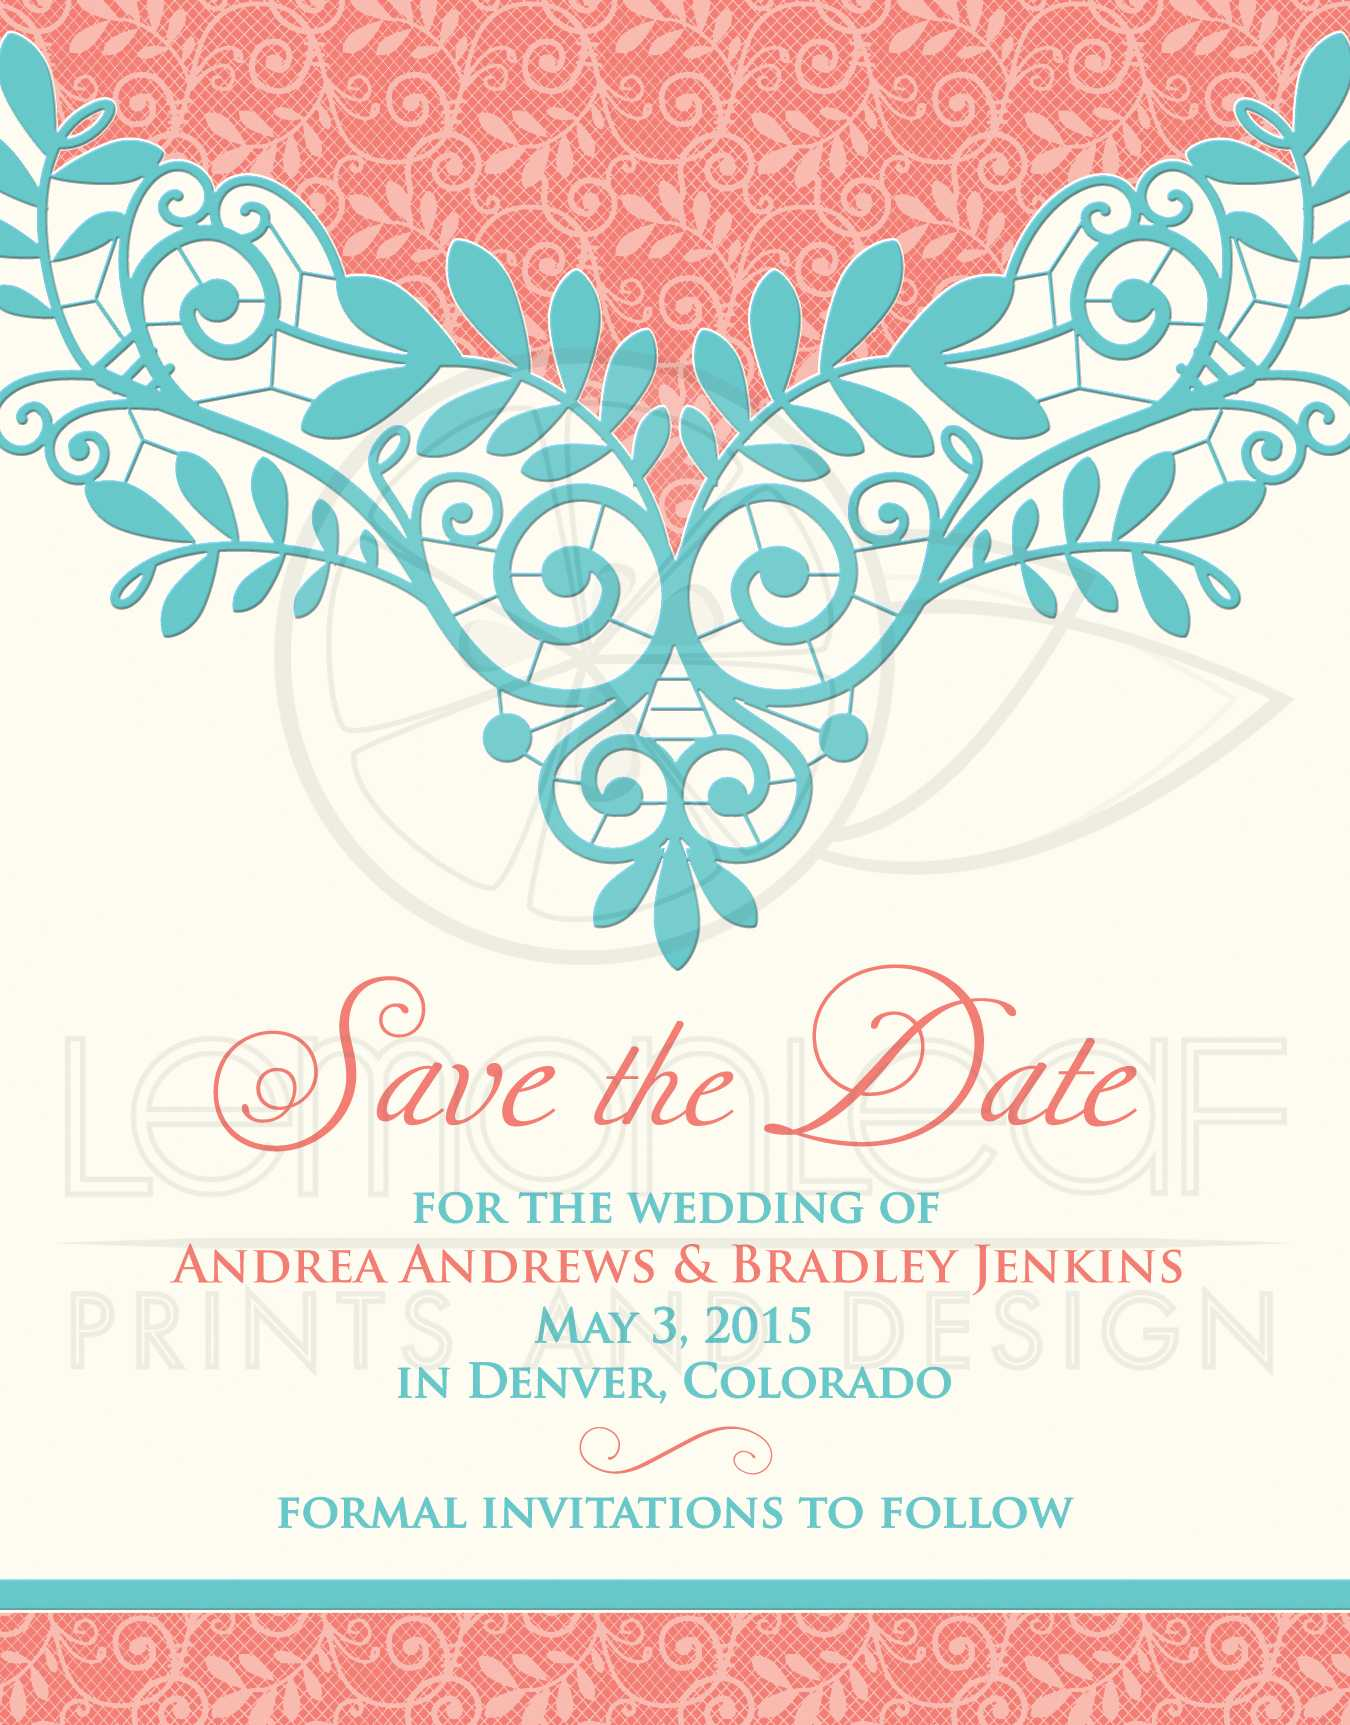 Wedding Save the Date Vintage Lace Coral Turquoise